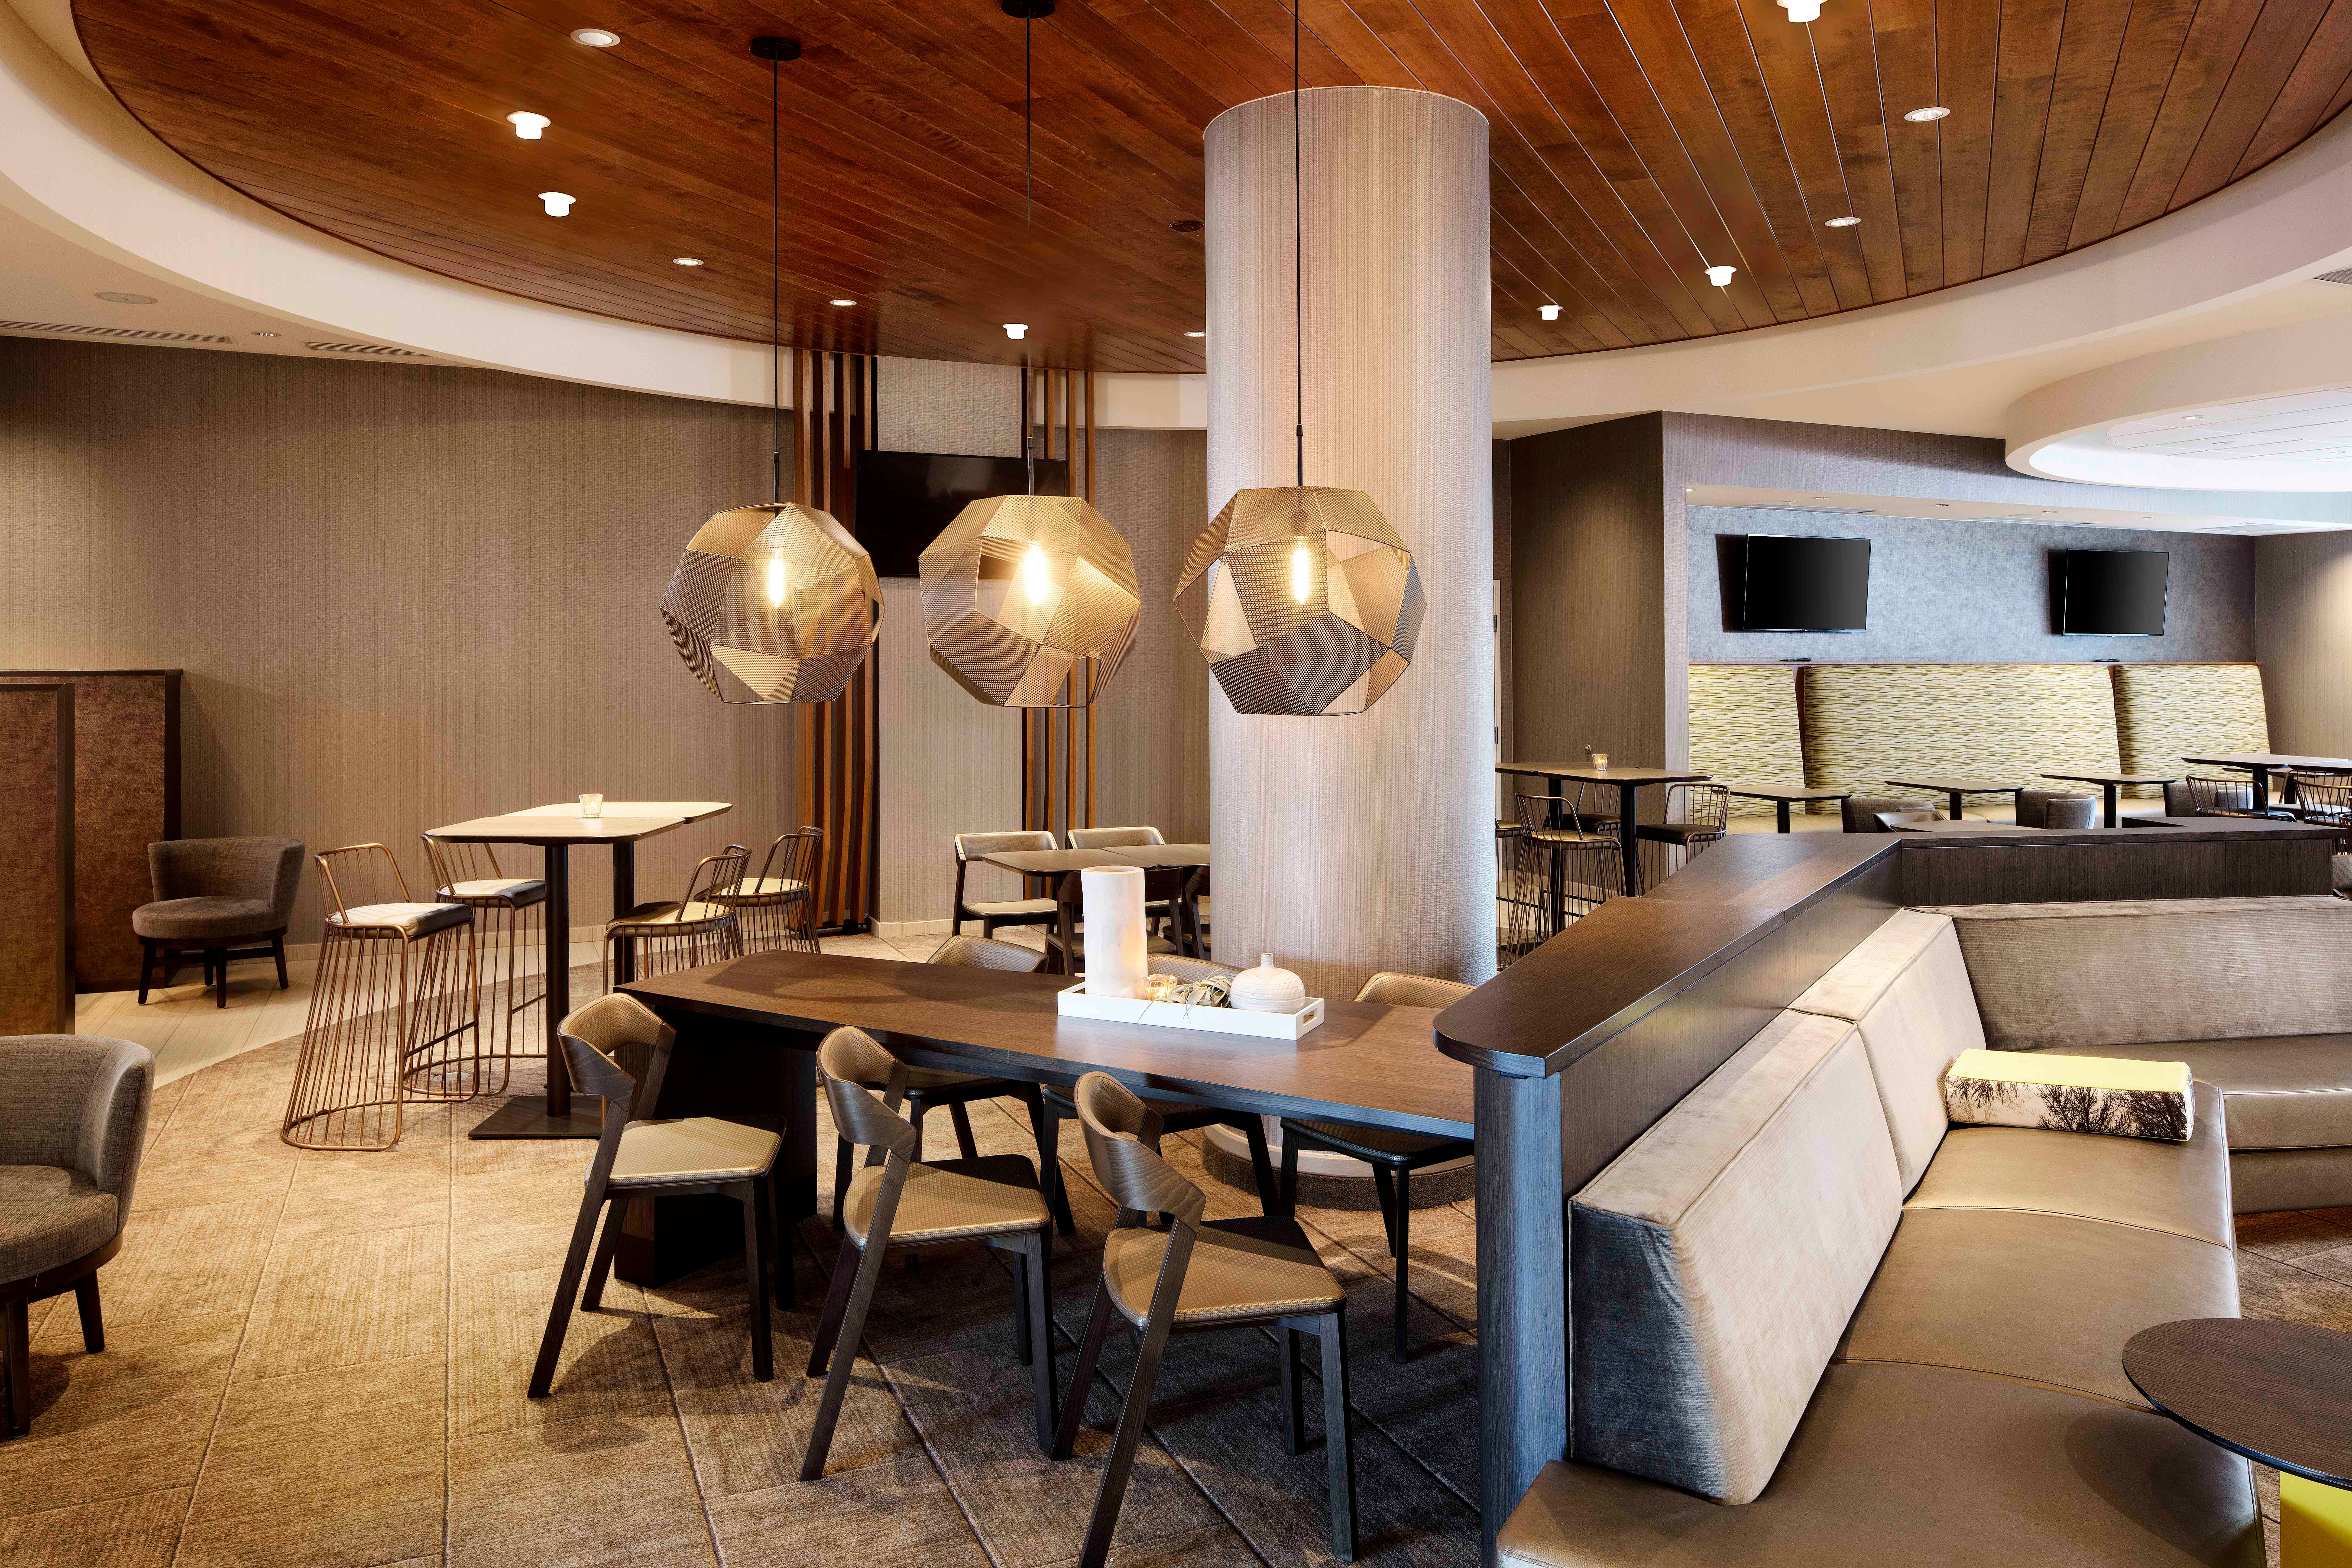 SpringHill Suites by Marriott Indianapolis Downtown image 4